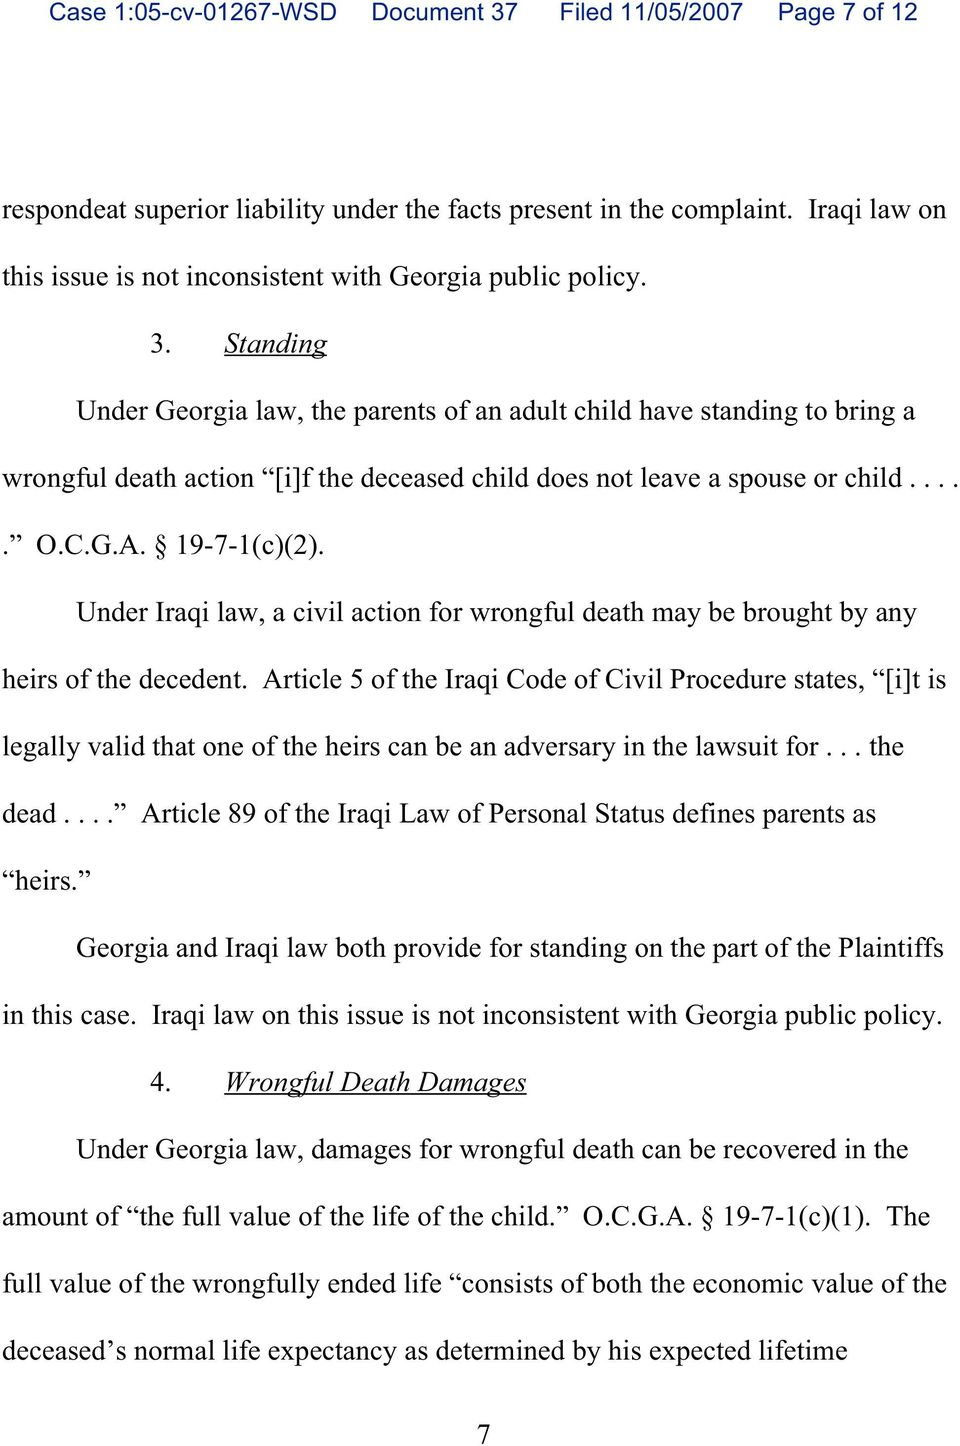 Standing Under Georgia law, the parents of an adult child have standing to bring a wrongful death action [i]f the deceased child does not leave a spouse or child..... O.C.G.A. 19-7-1(c)(2).